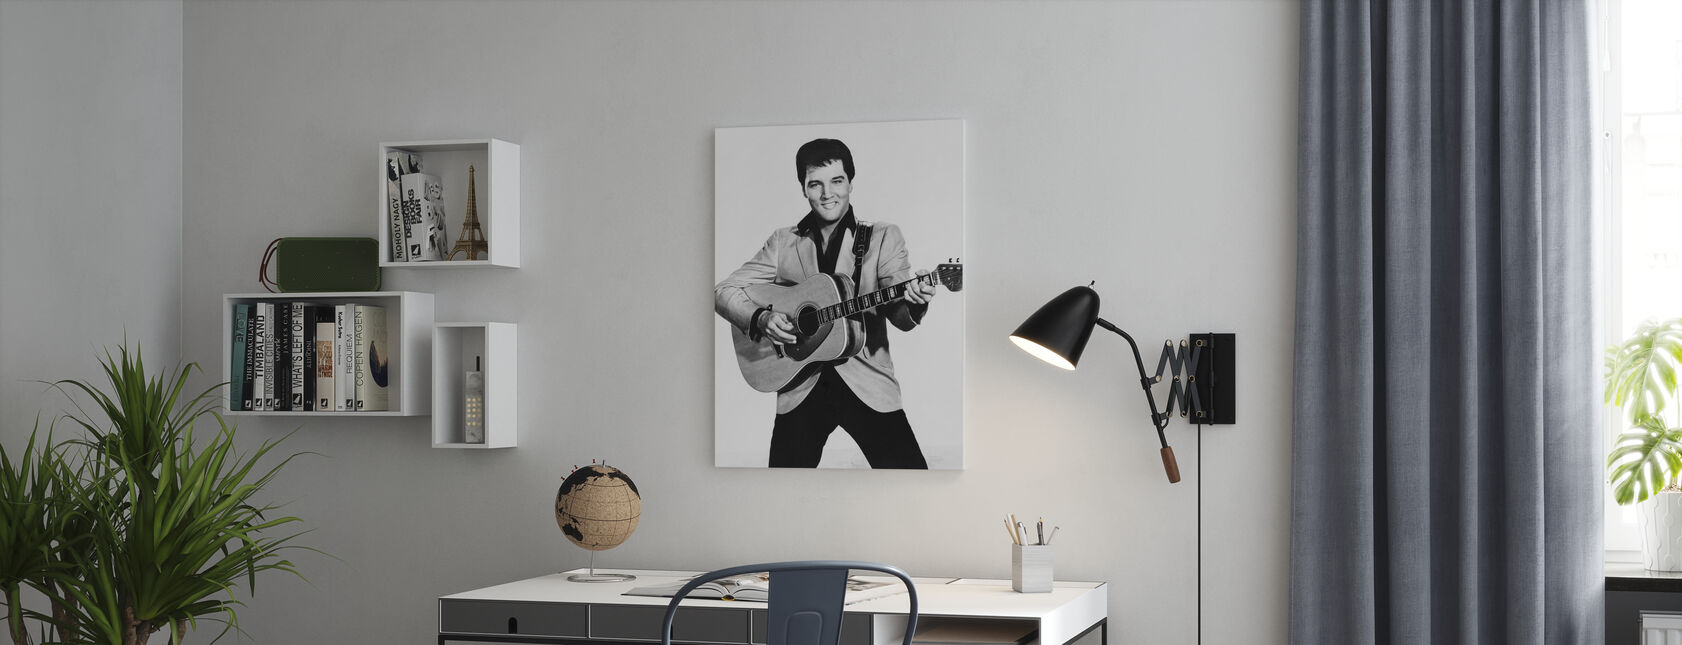 The King 1960s - Canvas print - Office